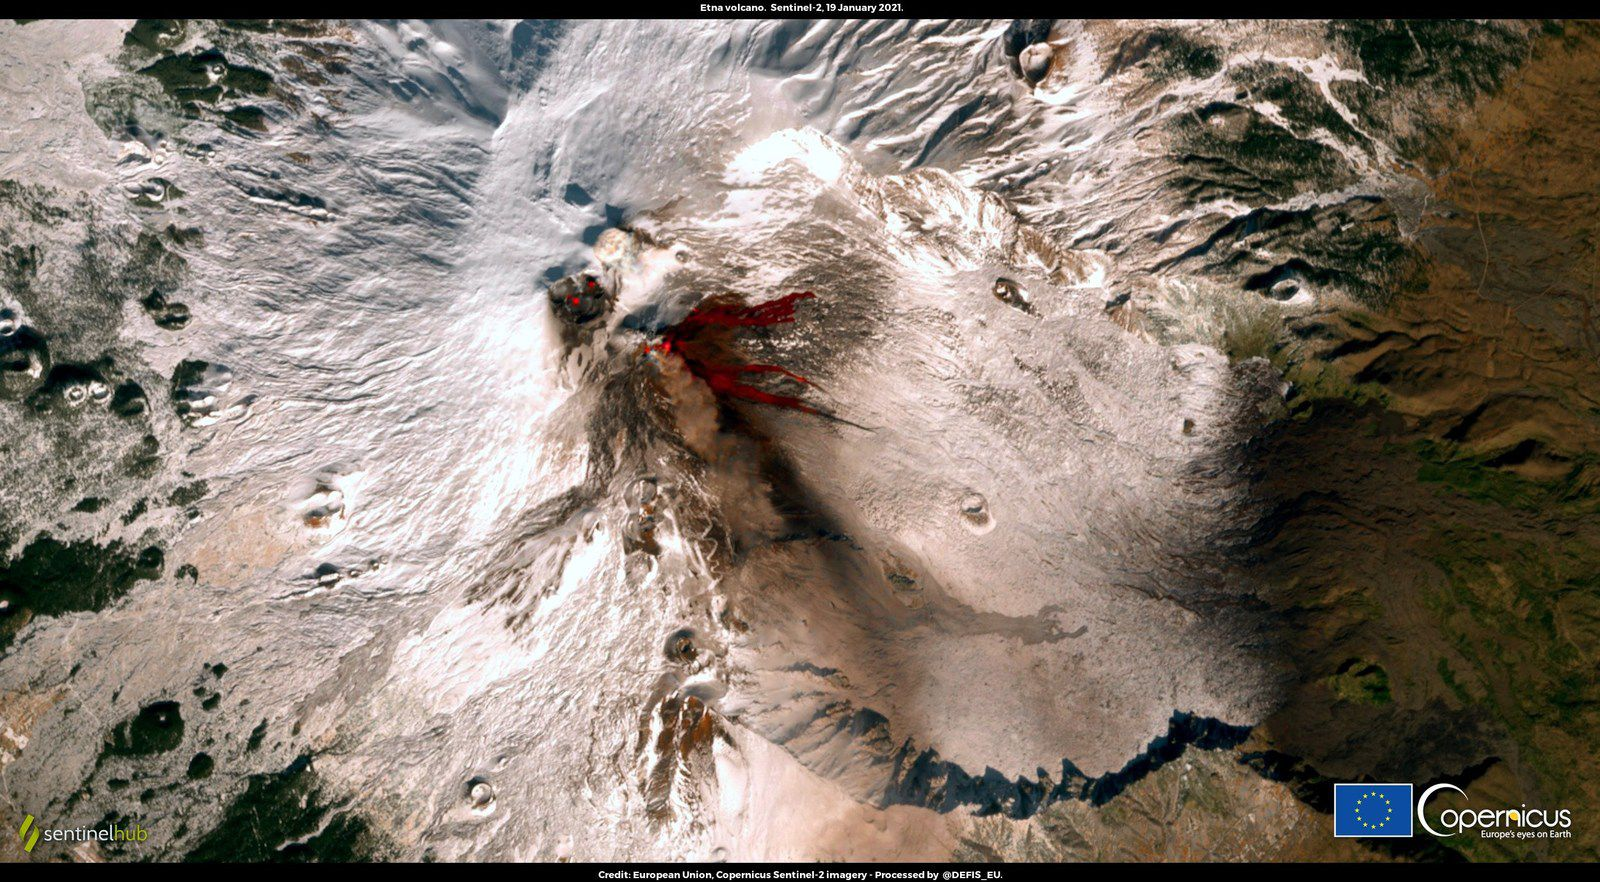 Etna - 01.19.2021 - contrast between snow cover and lava - Sentinel -2 / CLMS High-Resolution Snow and Ice Monitoring image - one click to enlarge